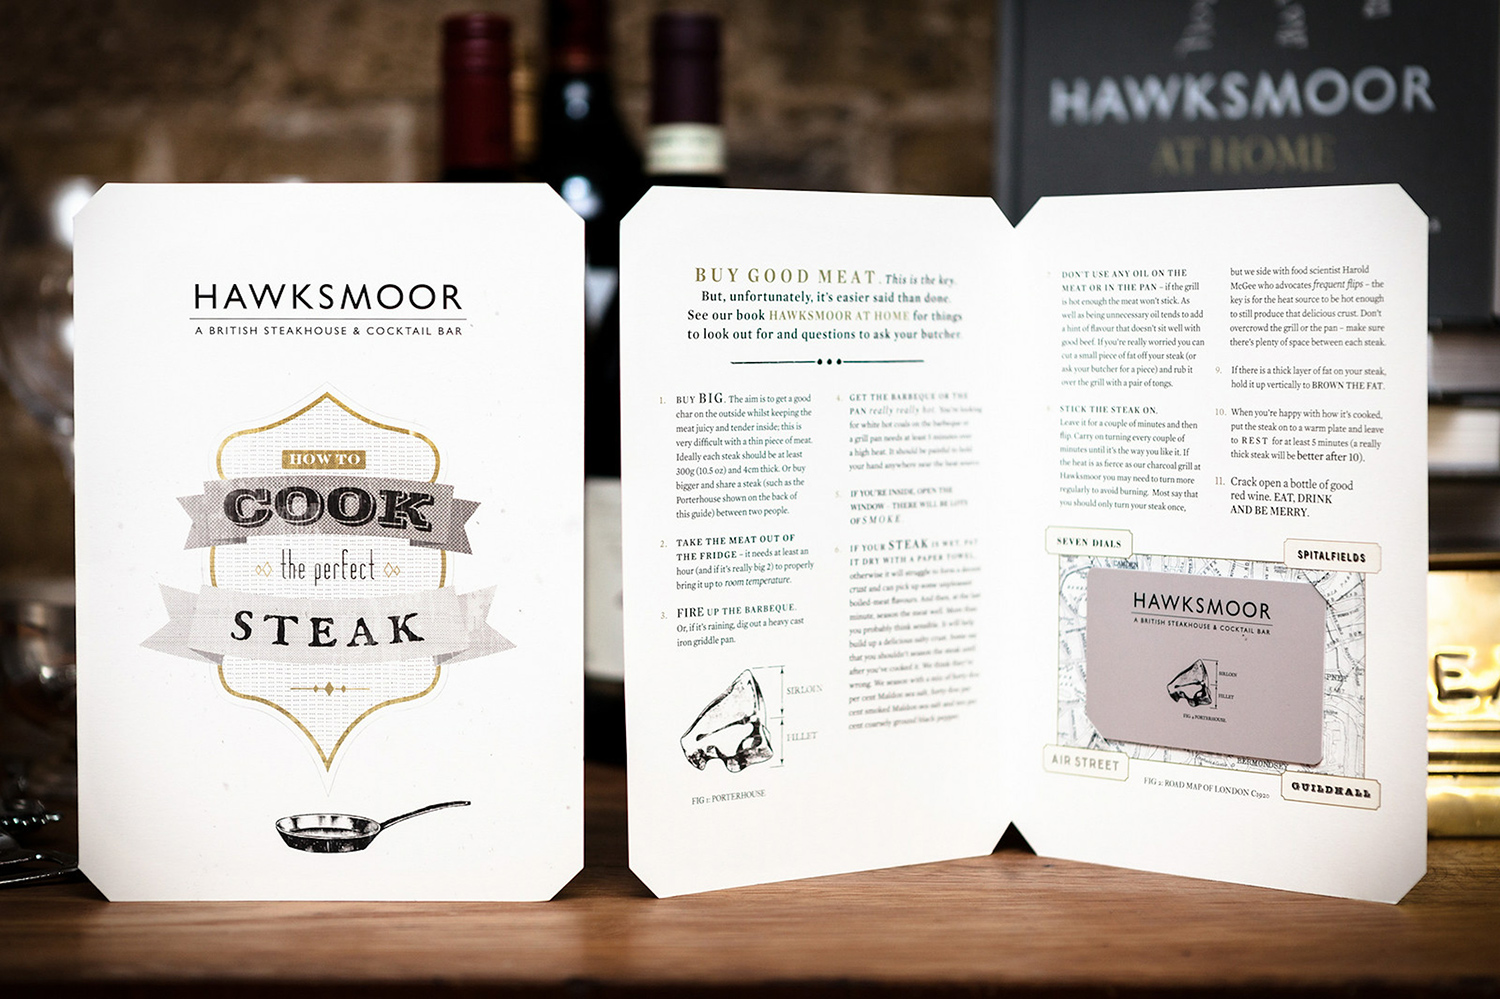 Marketing collateral for Hawksmoor by Saint Design